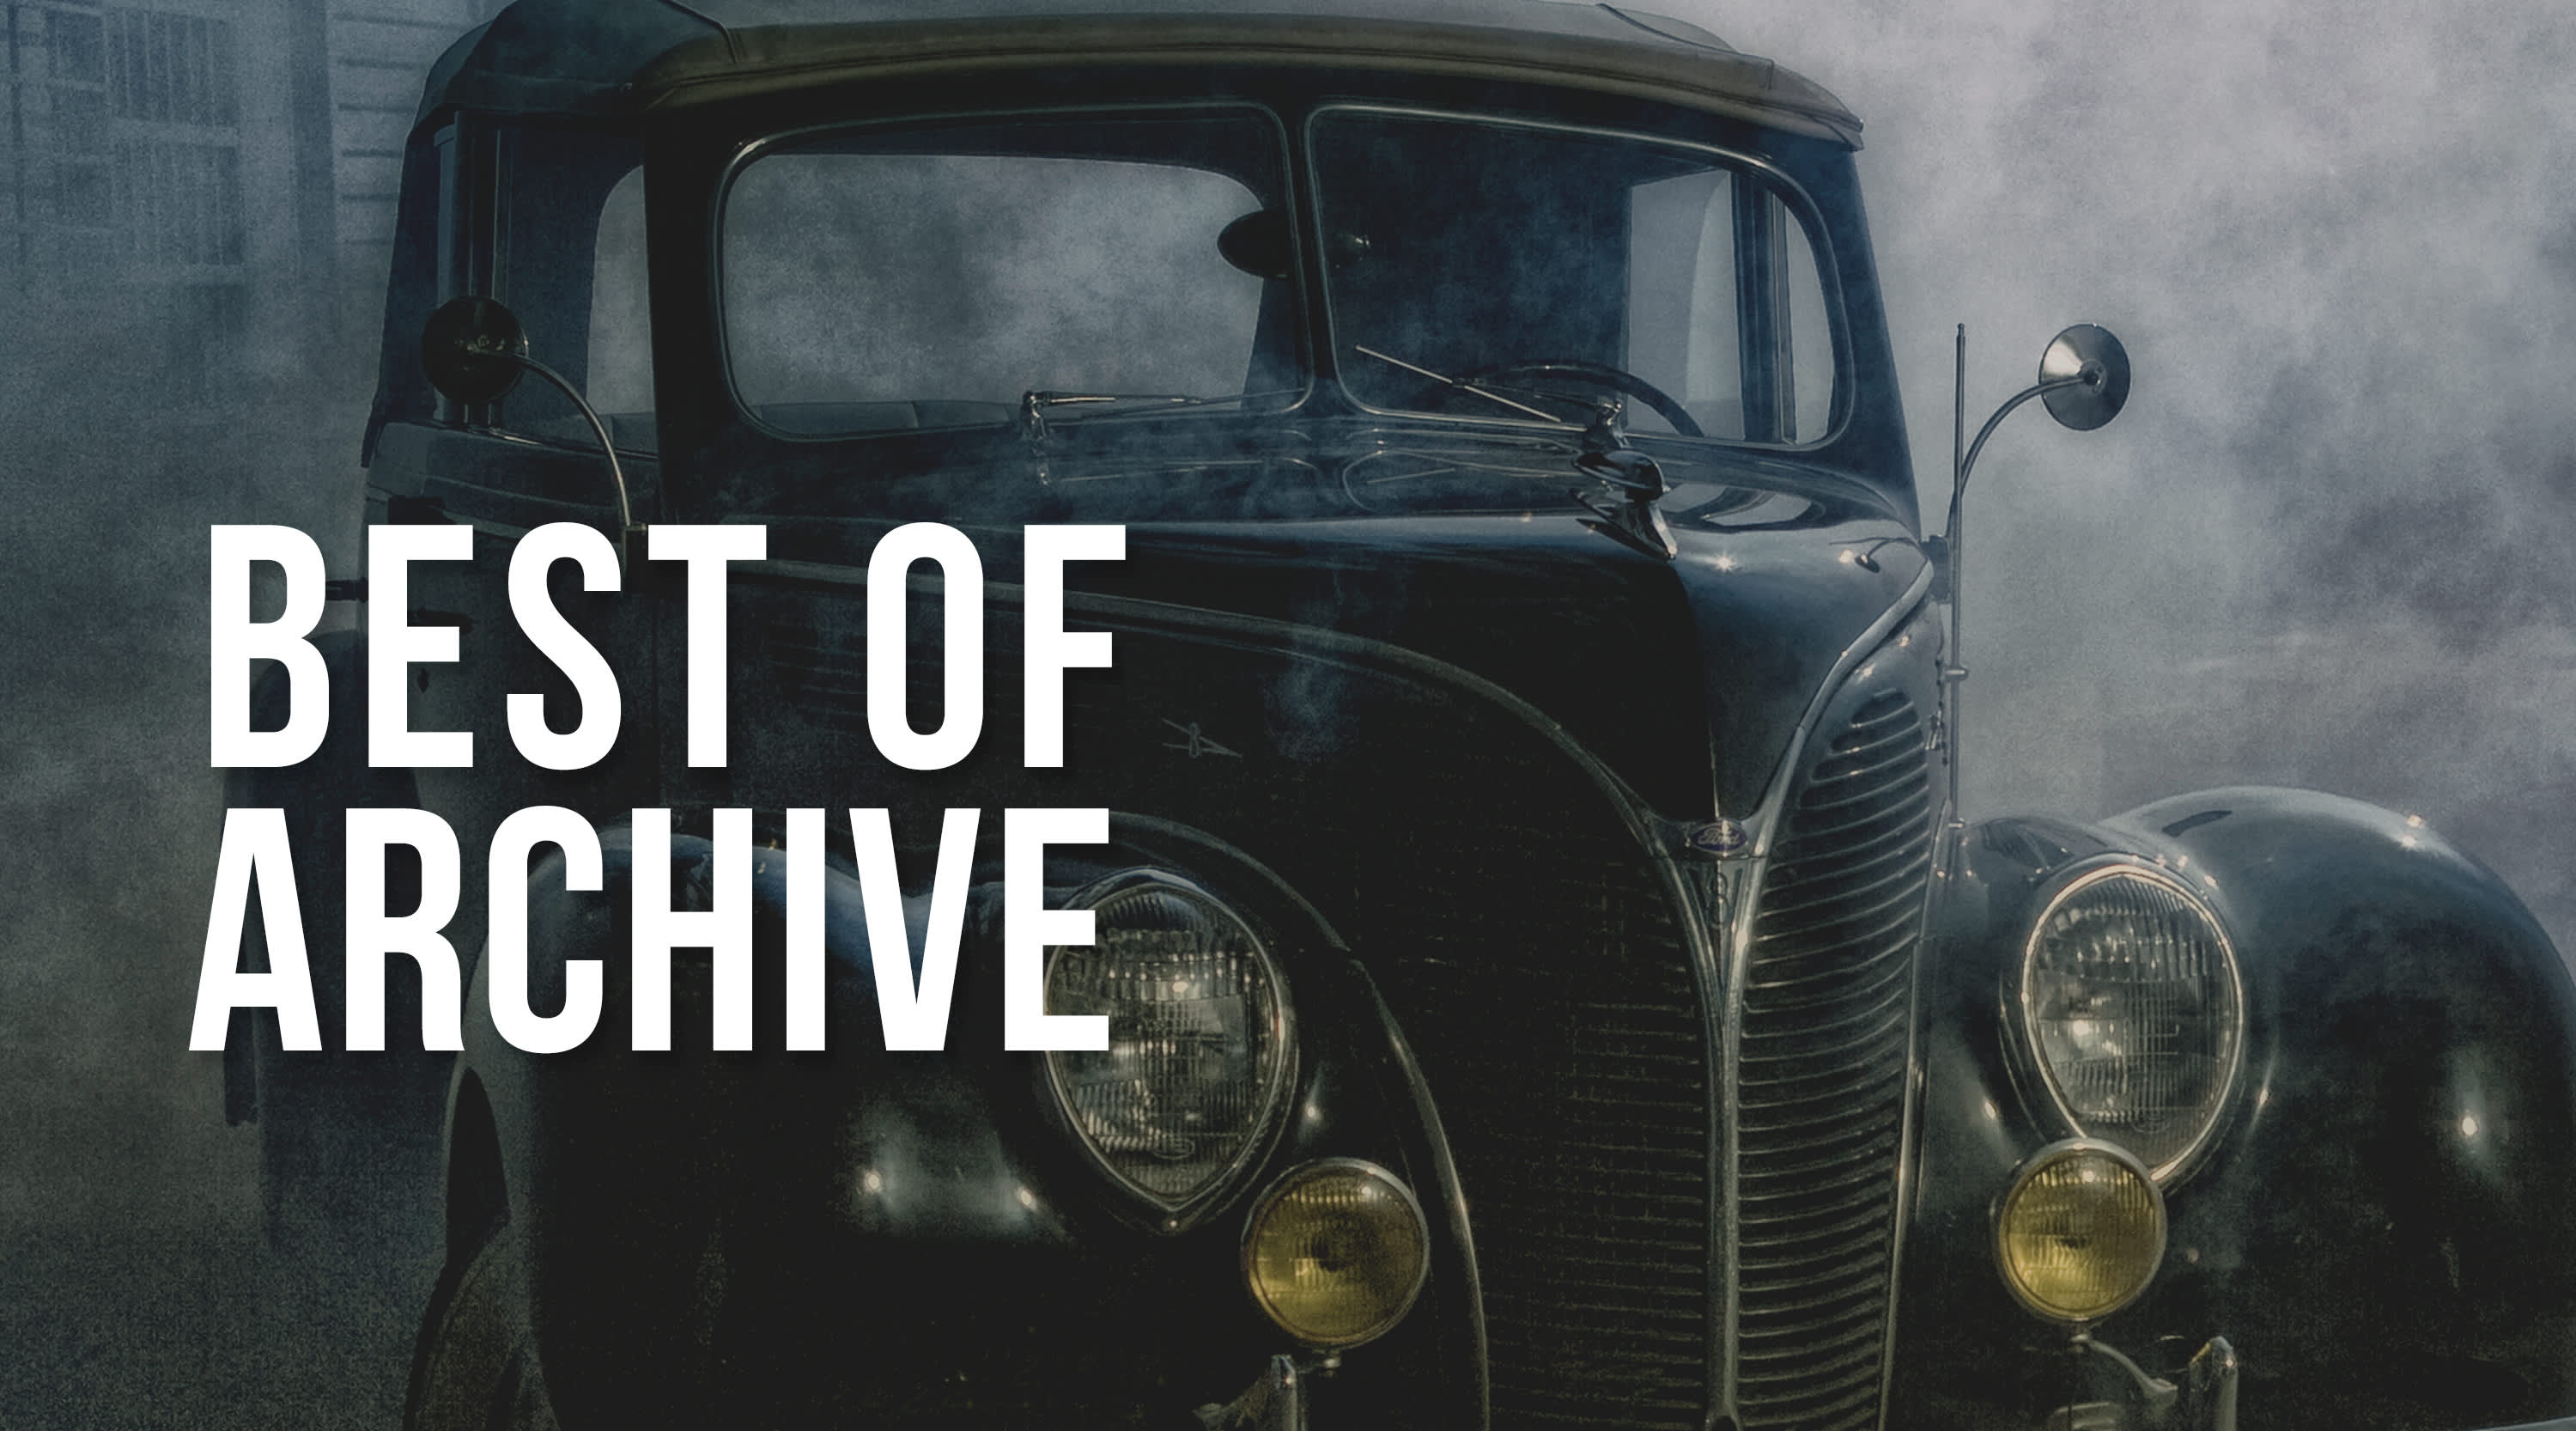 Best of Archive